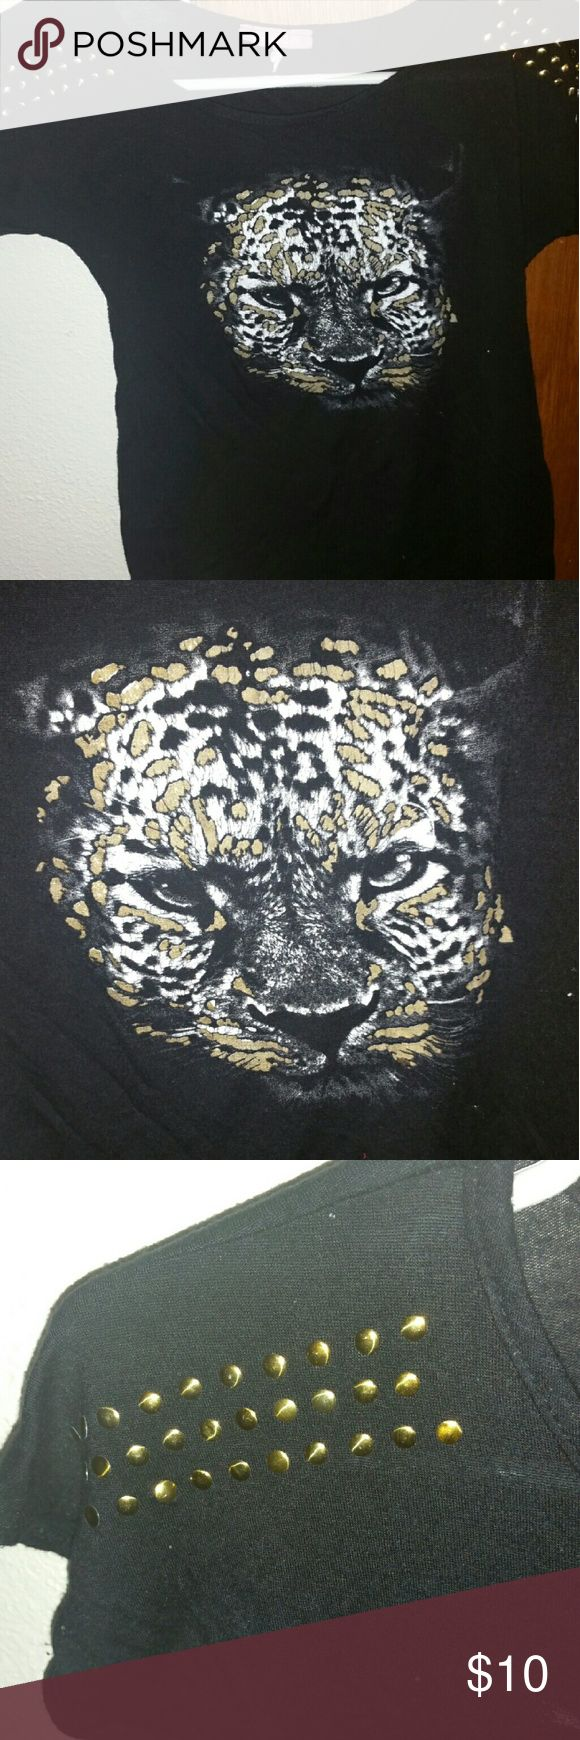 Rocker leopard shirt Black tee with a painted leopard on it. Gold studs on the shoulders. Size x small. Worn a handful of times. Tops Tees - Short Sleeve